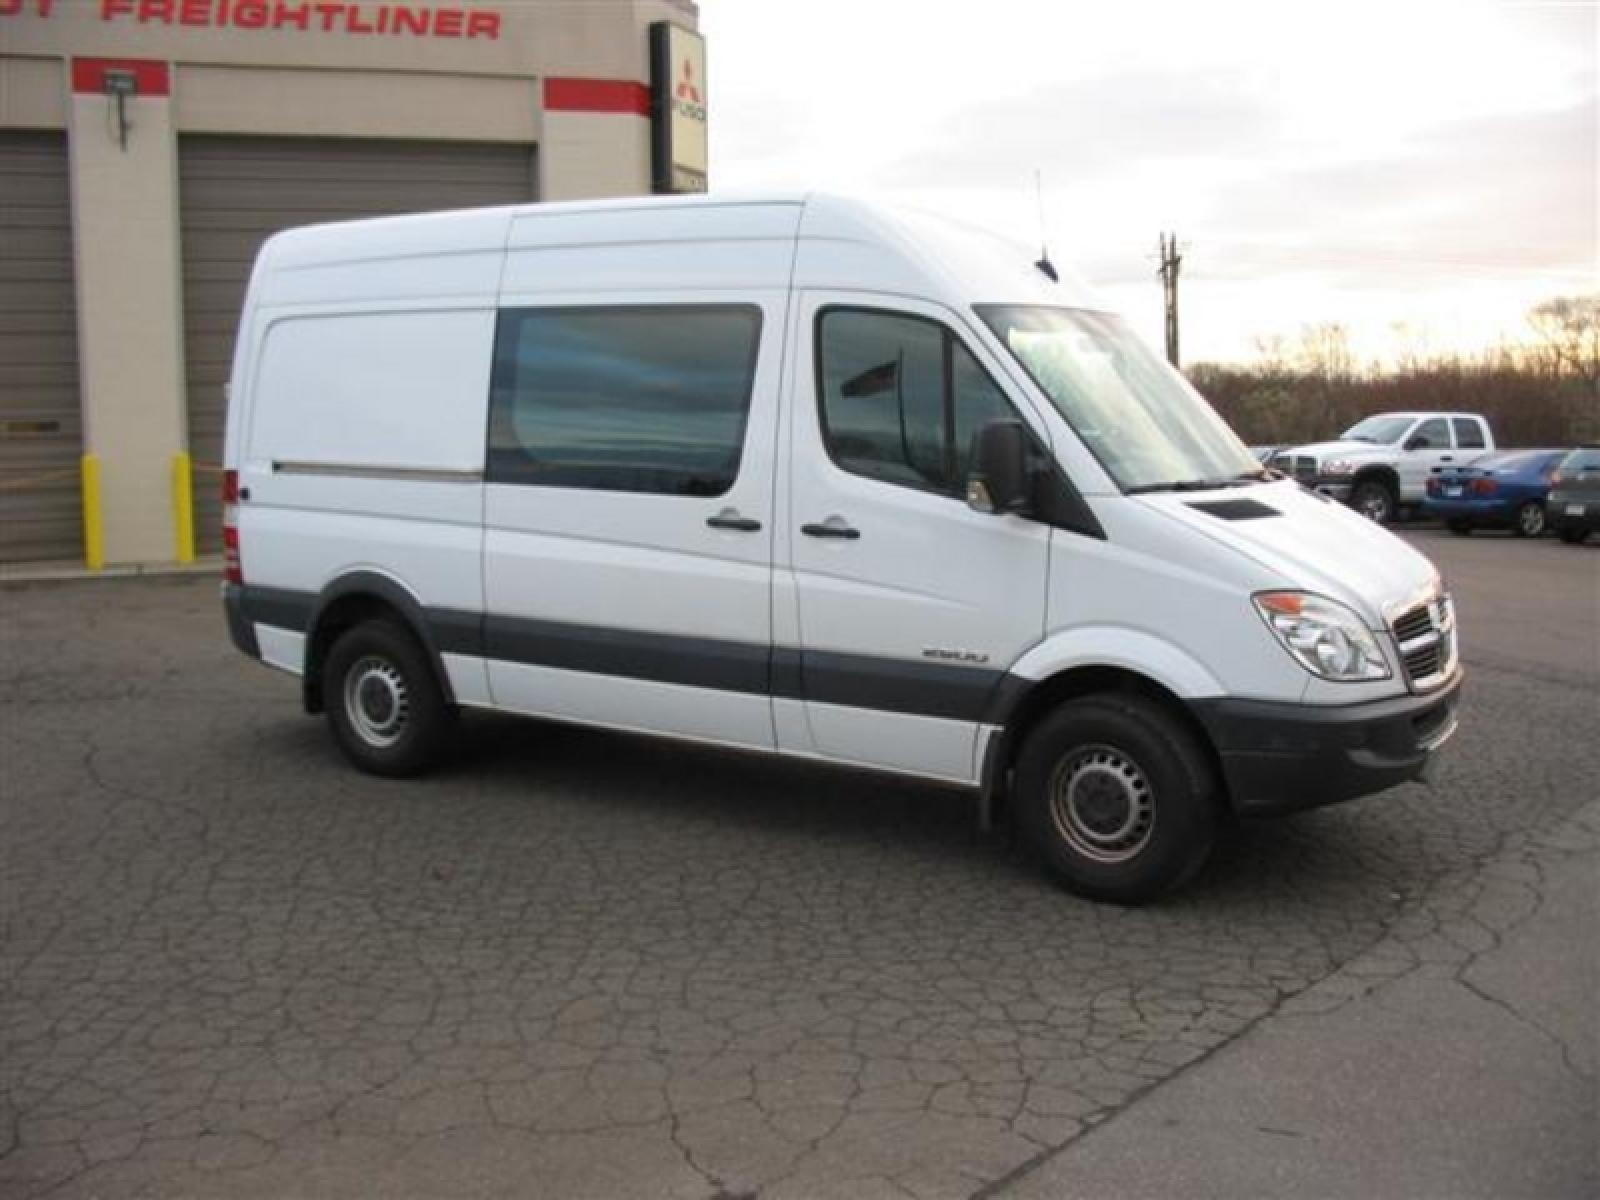 2008 dodge sprinter information and photos zombiedrive. Black Bedroom Furniture Sets. Home Design Ideas